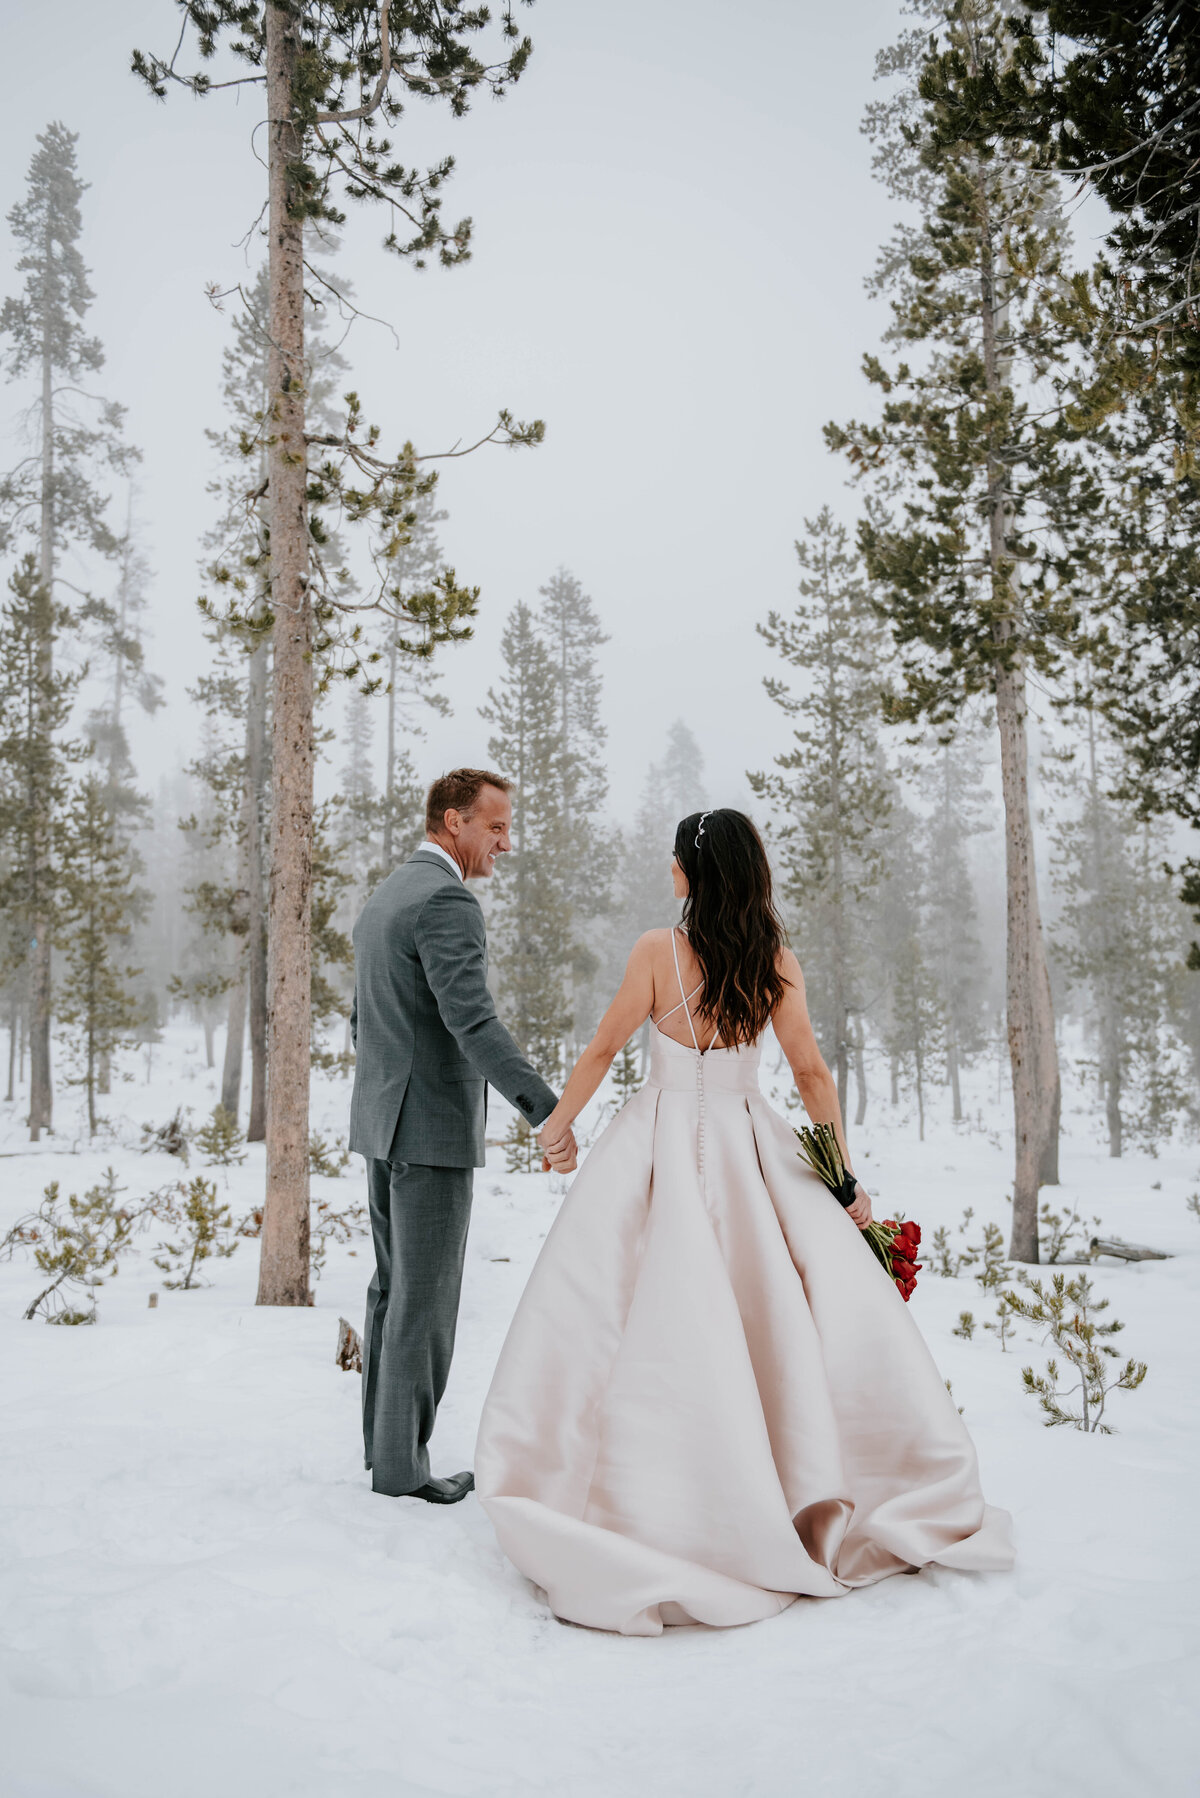 mt-bachelor-snow-winter-elopement-bend-oregon-wedding-photographer-2380